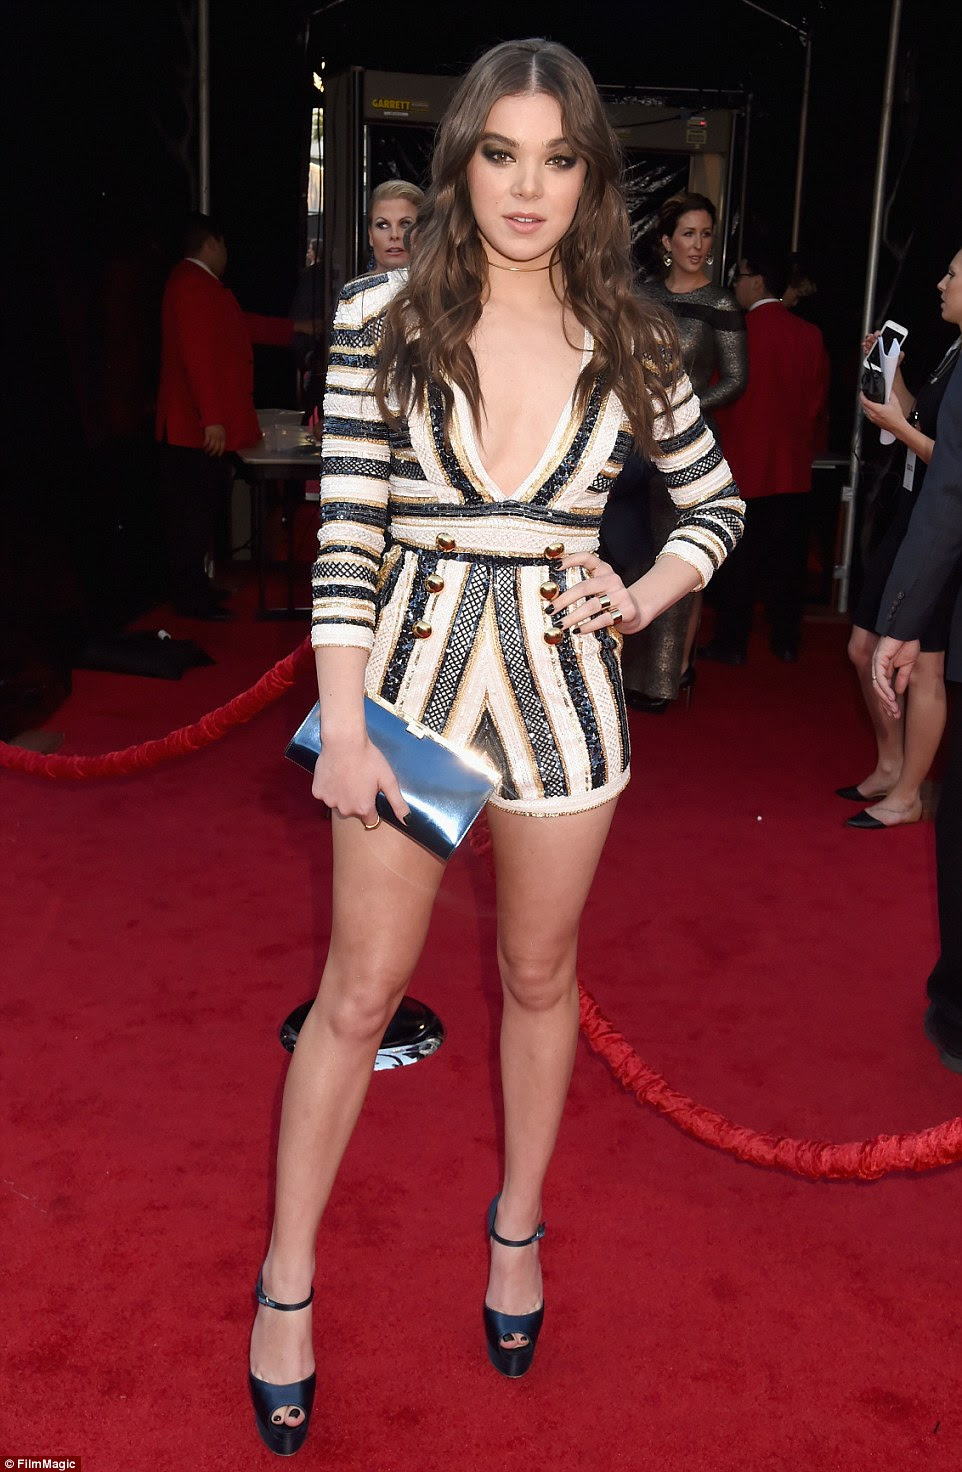 Leggy look: Actress Hailee Steinfeld sported a skimpy romper with gold button detail